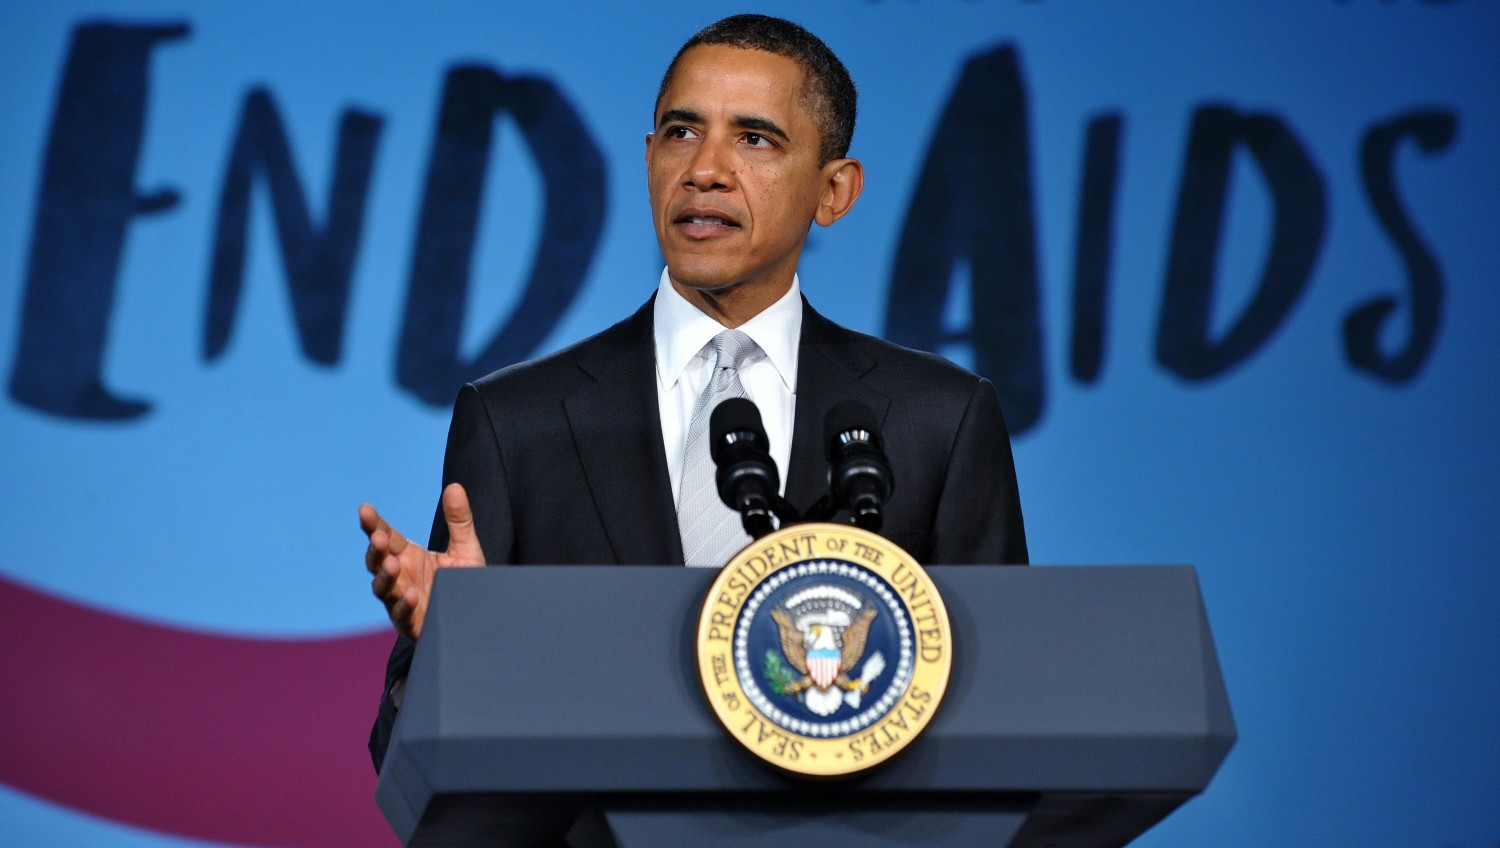 Roses are red, violets are blue, gays deserve full equality, Obama-cares about you (Photo by MANDEL NGAN/AFP/Getty Images